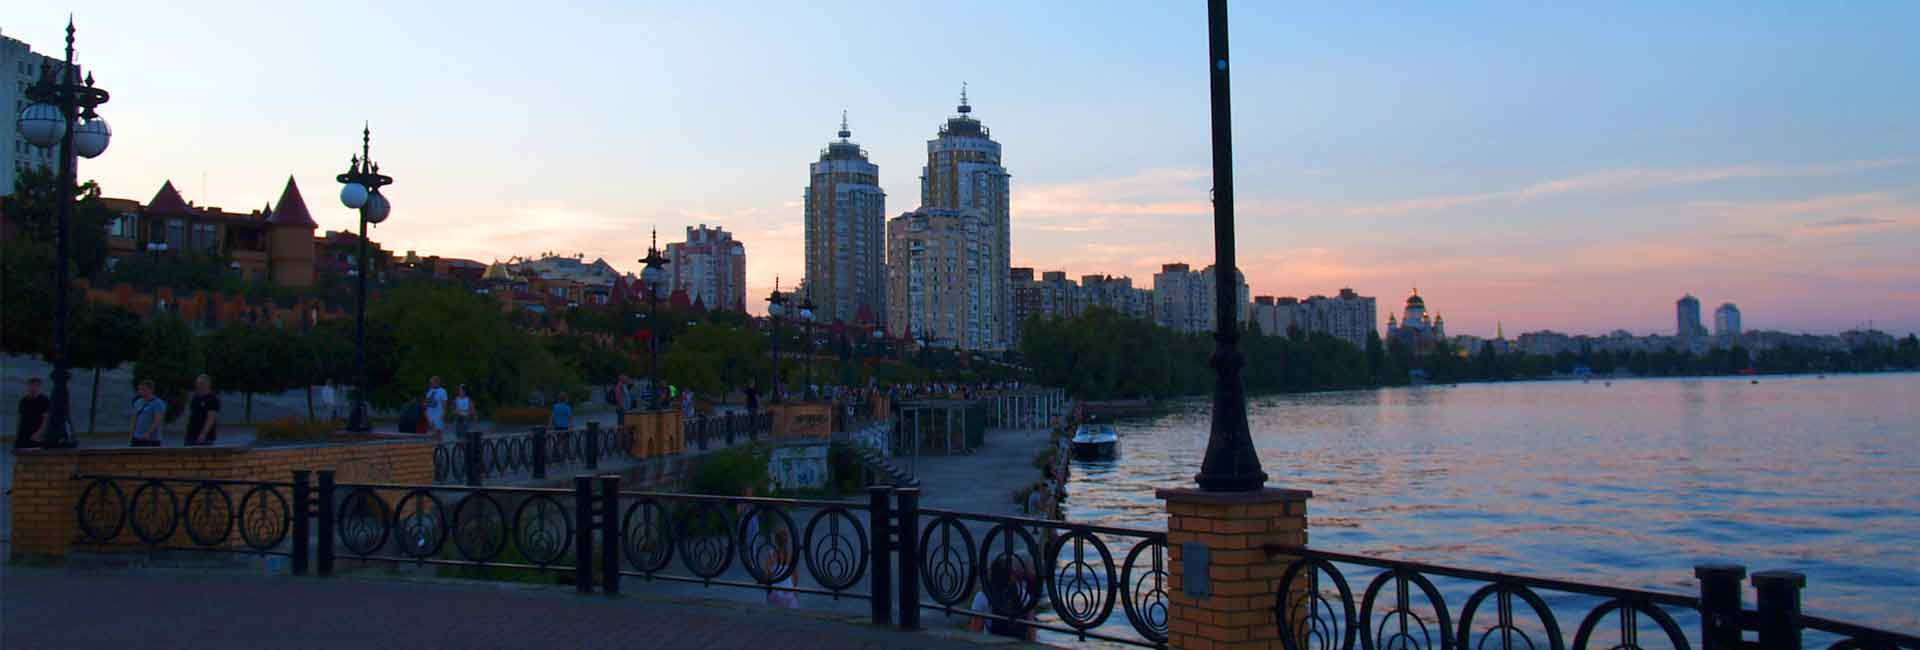 The beauty and romance of Obolonskaya embankment